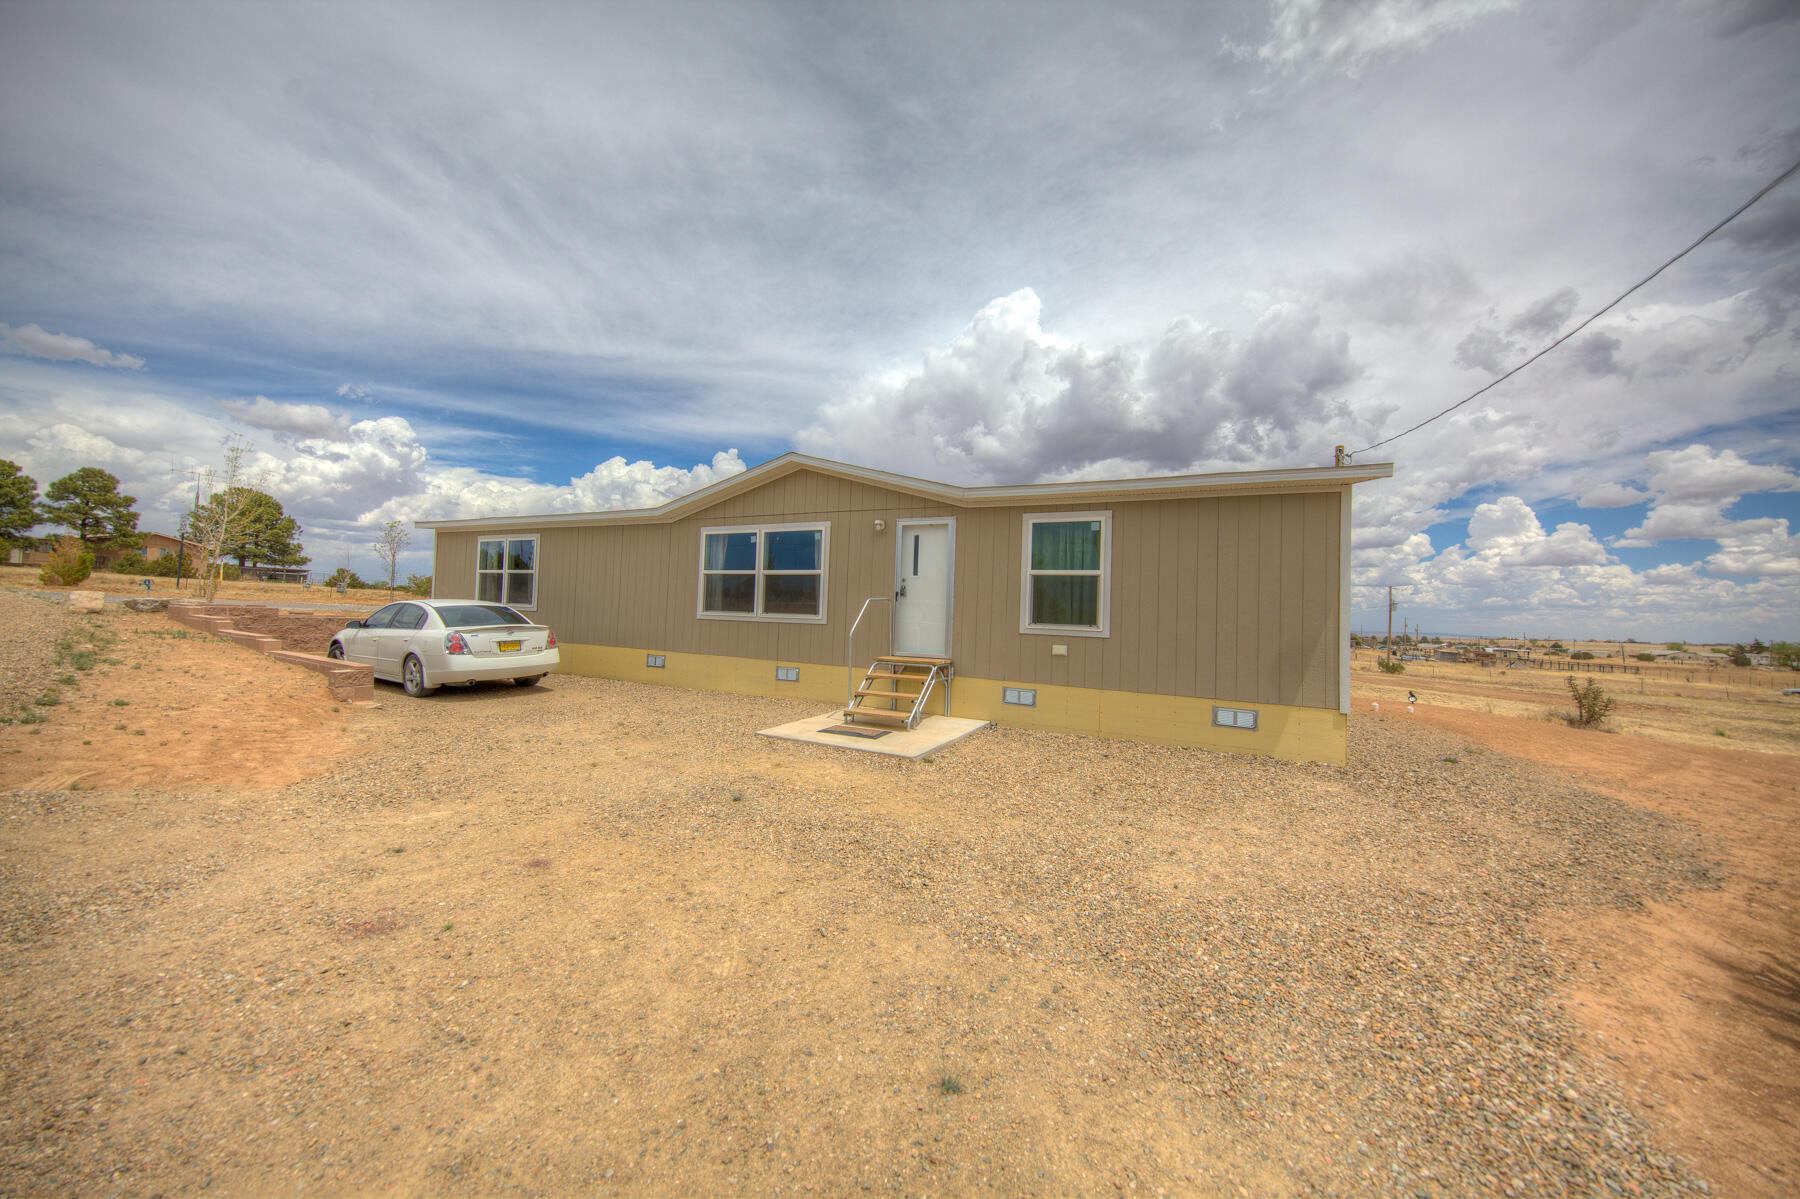 New manufactured home on 1 acre in Edgewood close to Wal Mart. 3 bedrooms 2 bath move in ready, Community water new septic system.